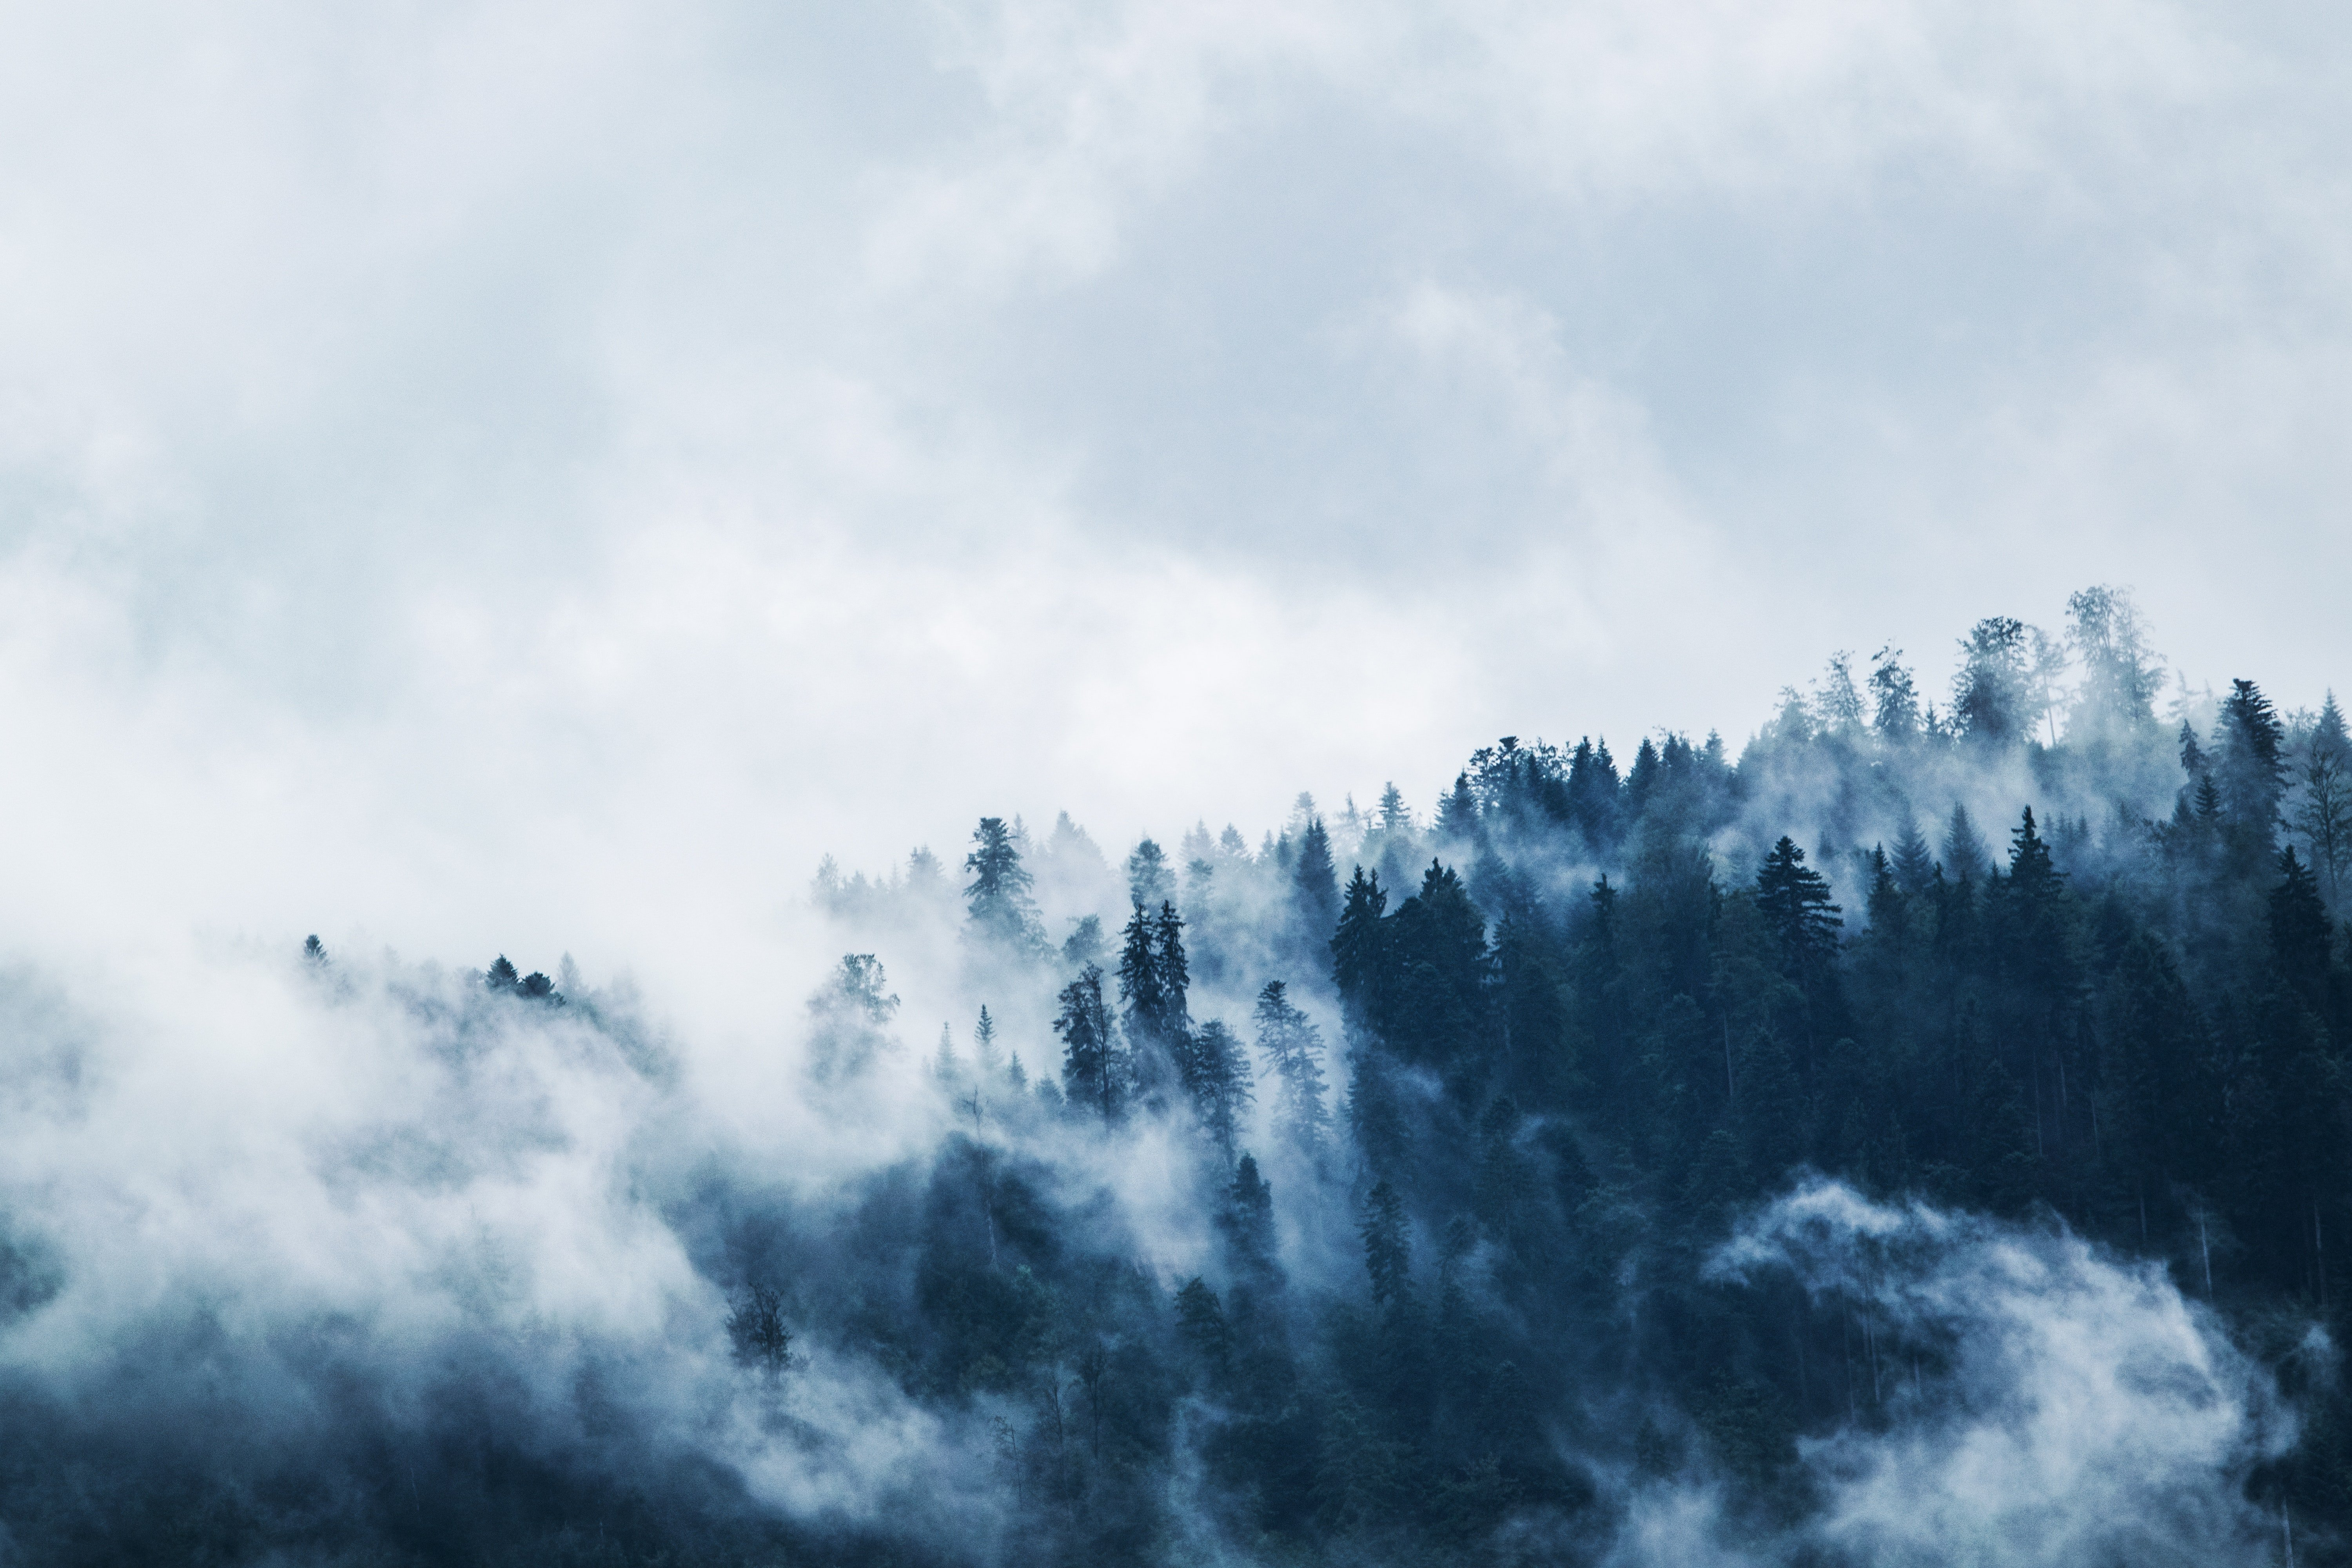 green-pine-trees-covered-with-fogs-under-white-sky-during-167699